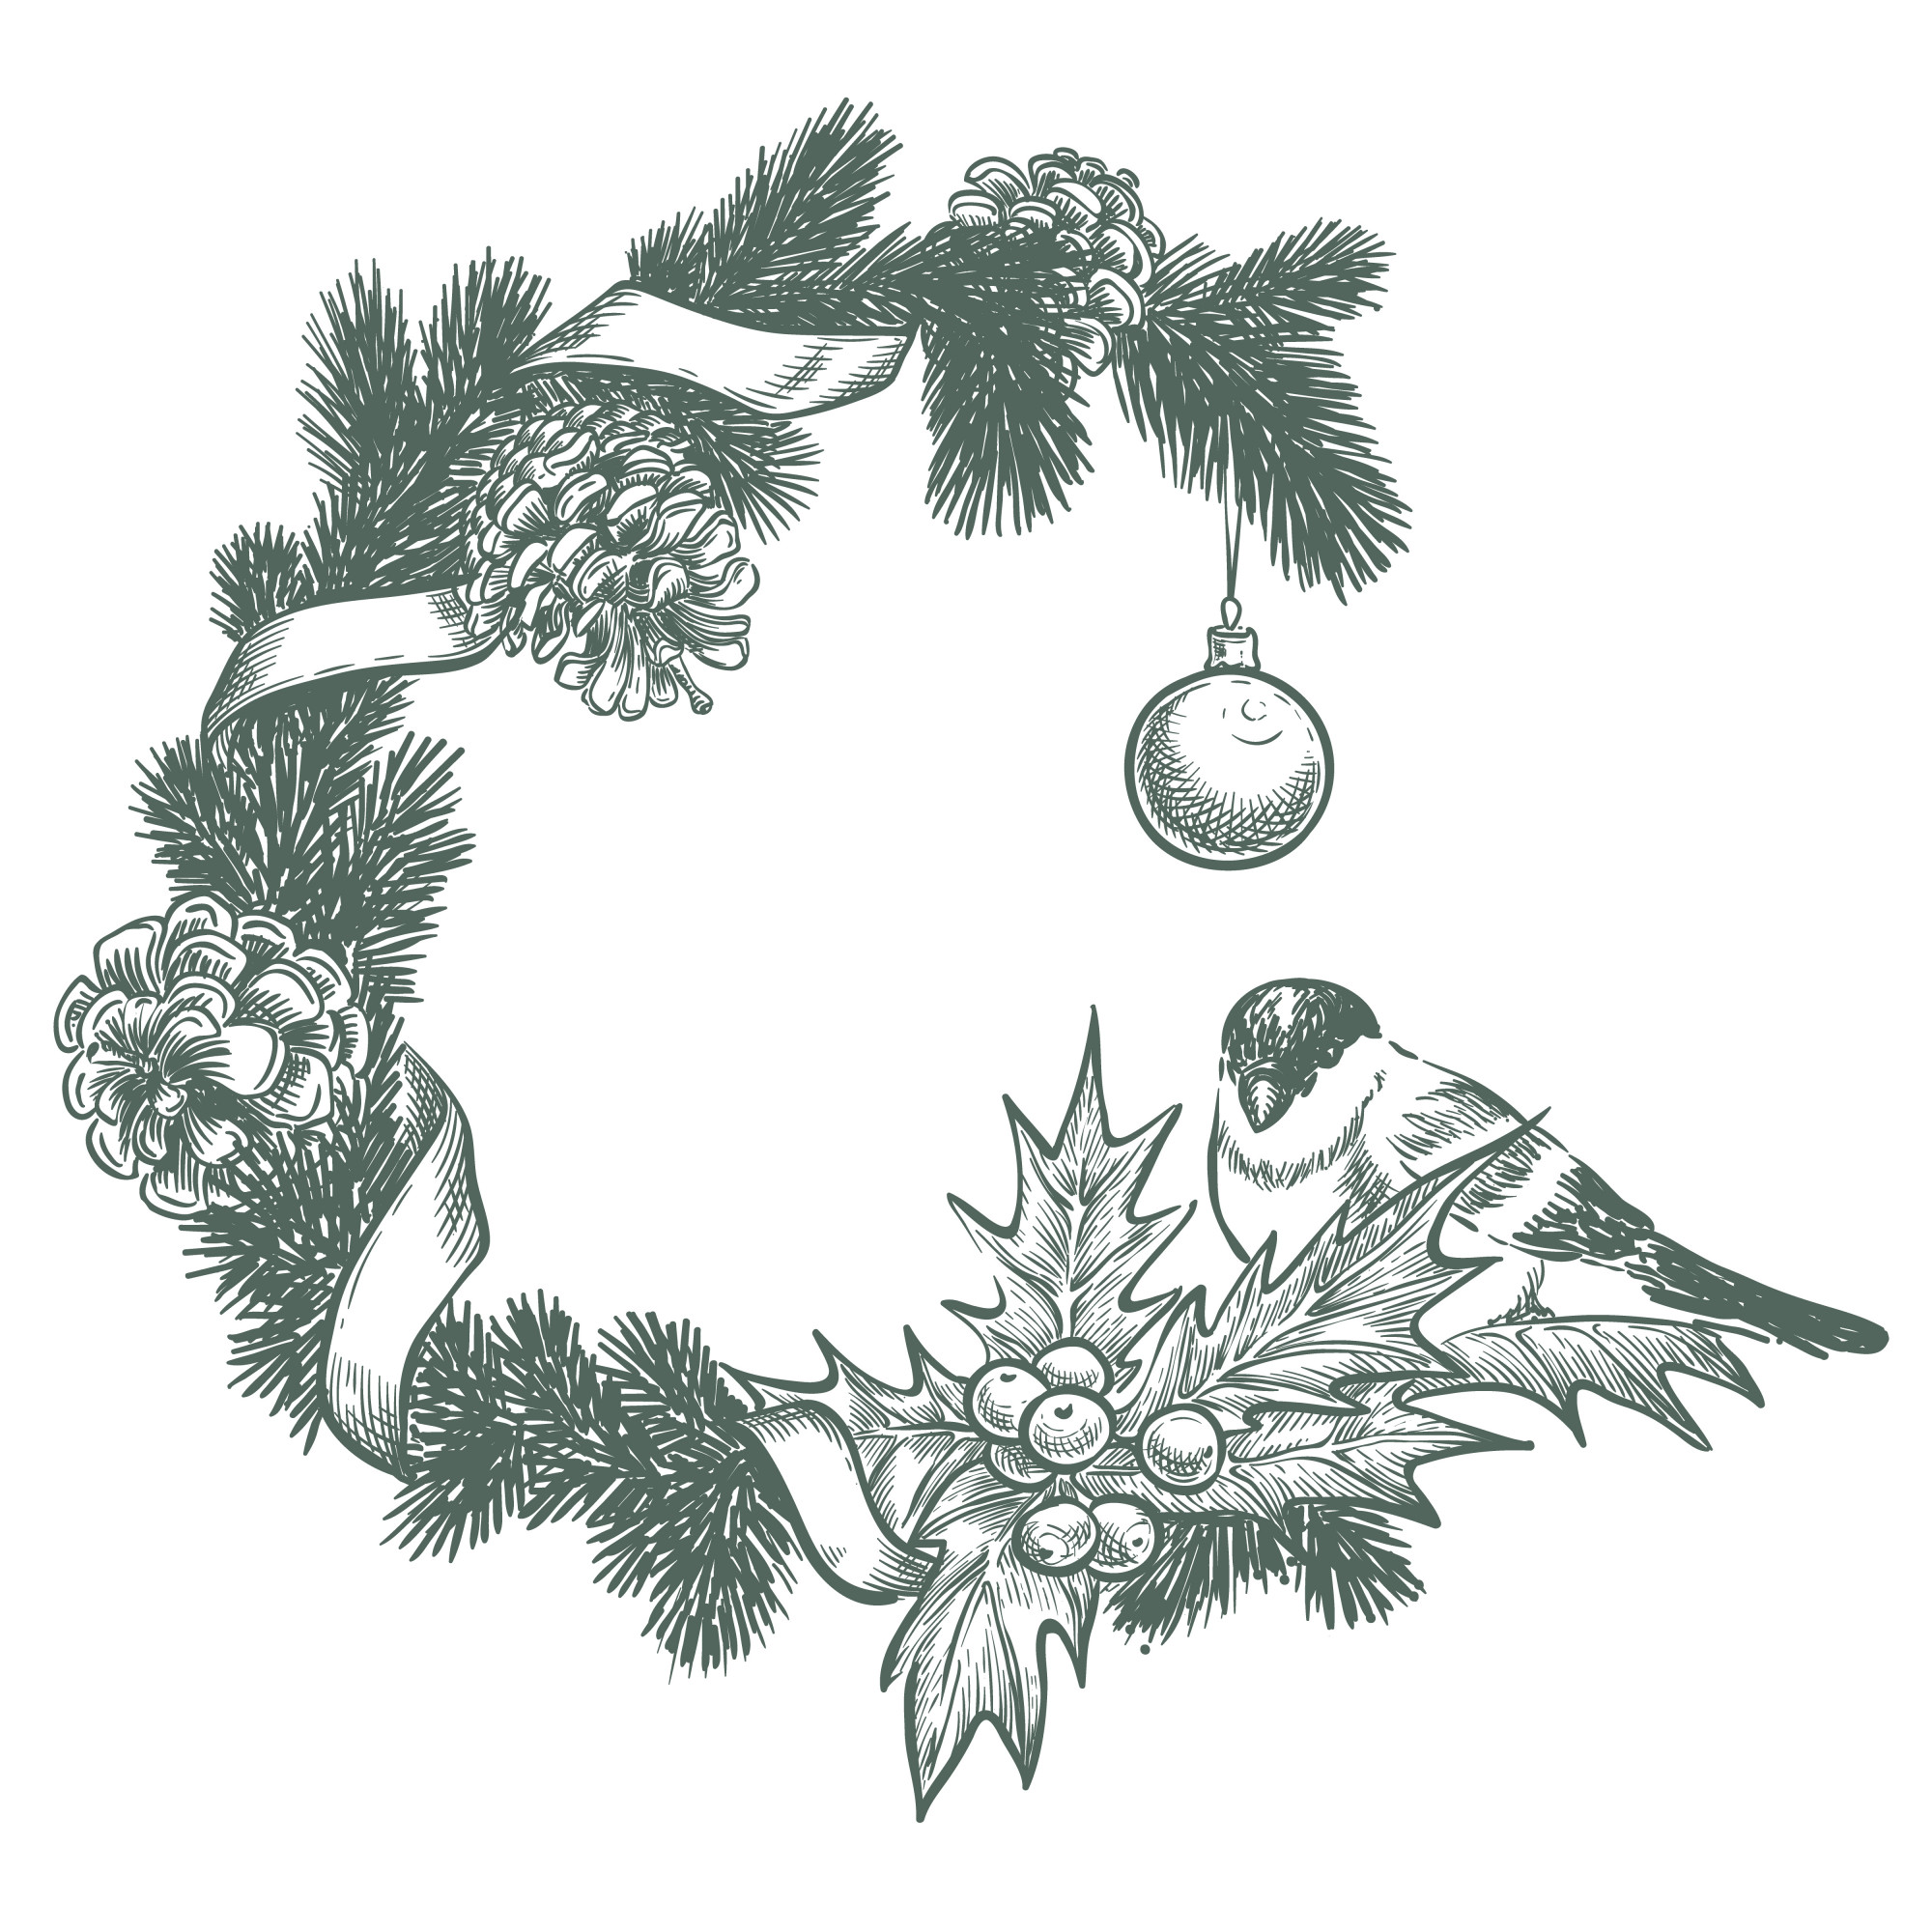 Frame for the new year, with fir branches, bird and cones